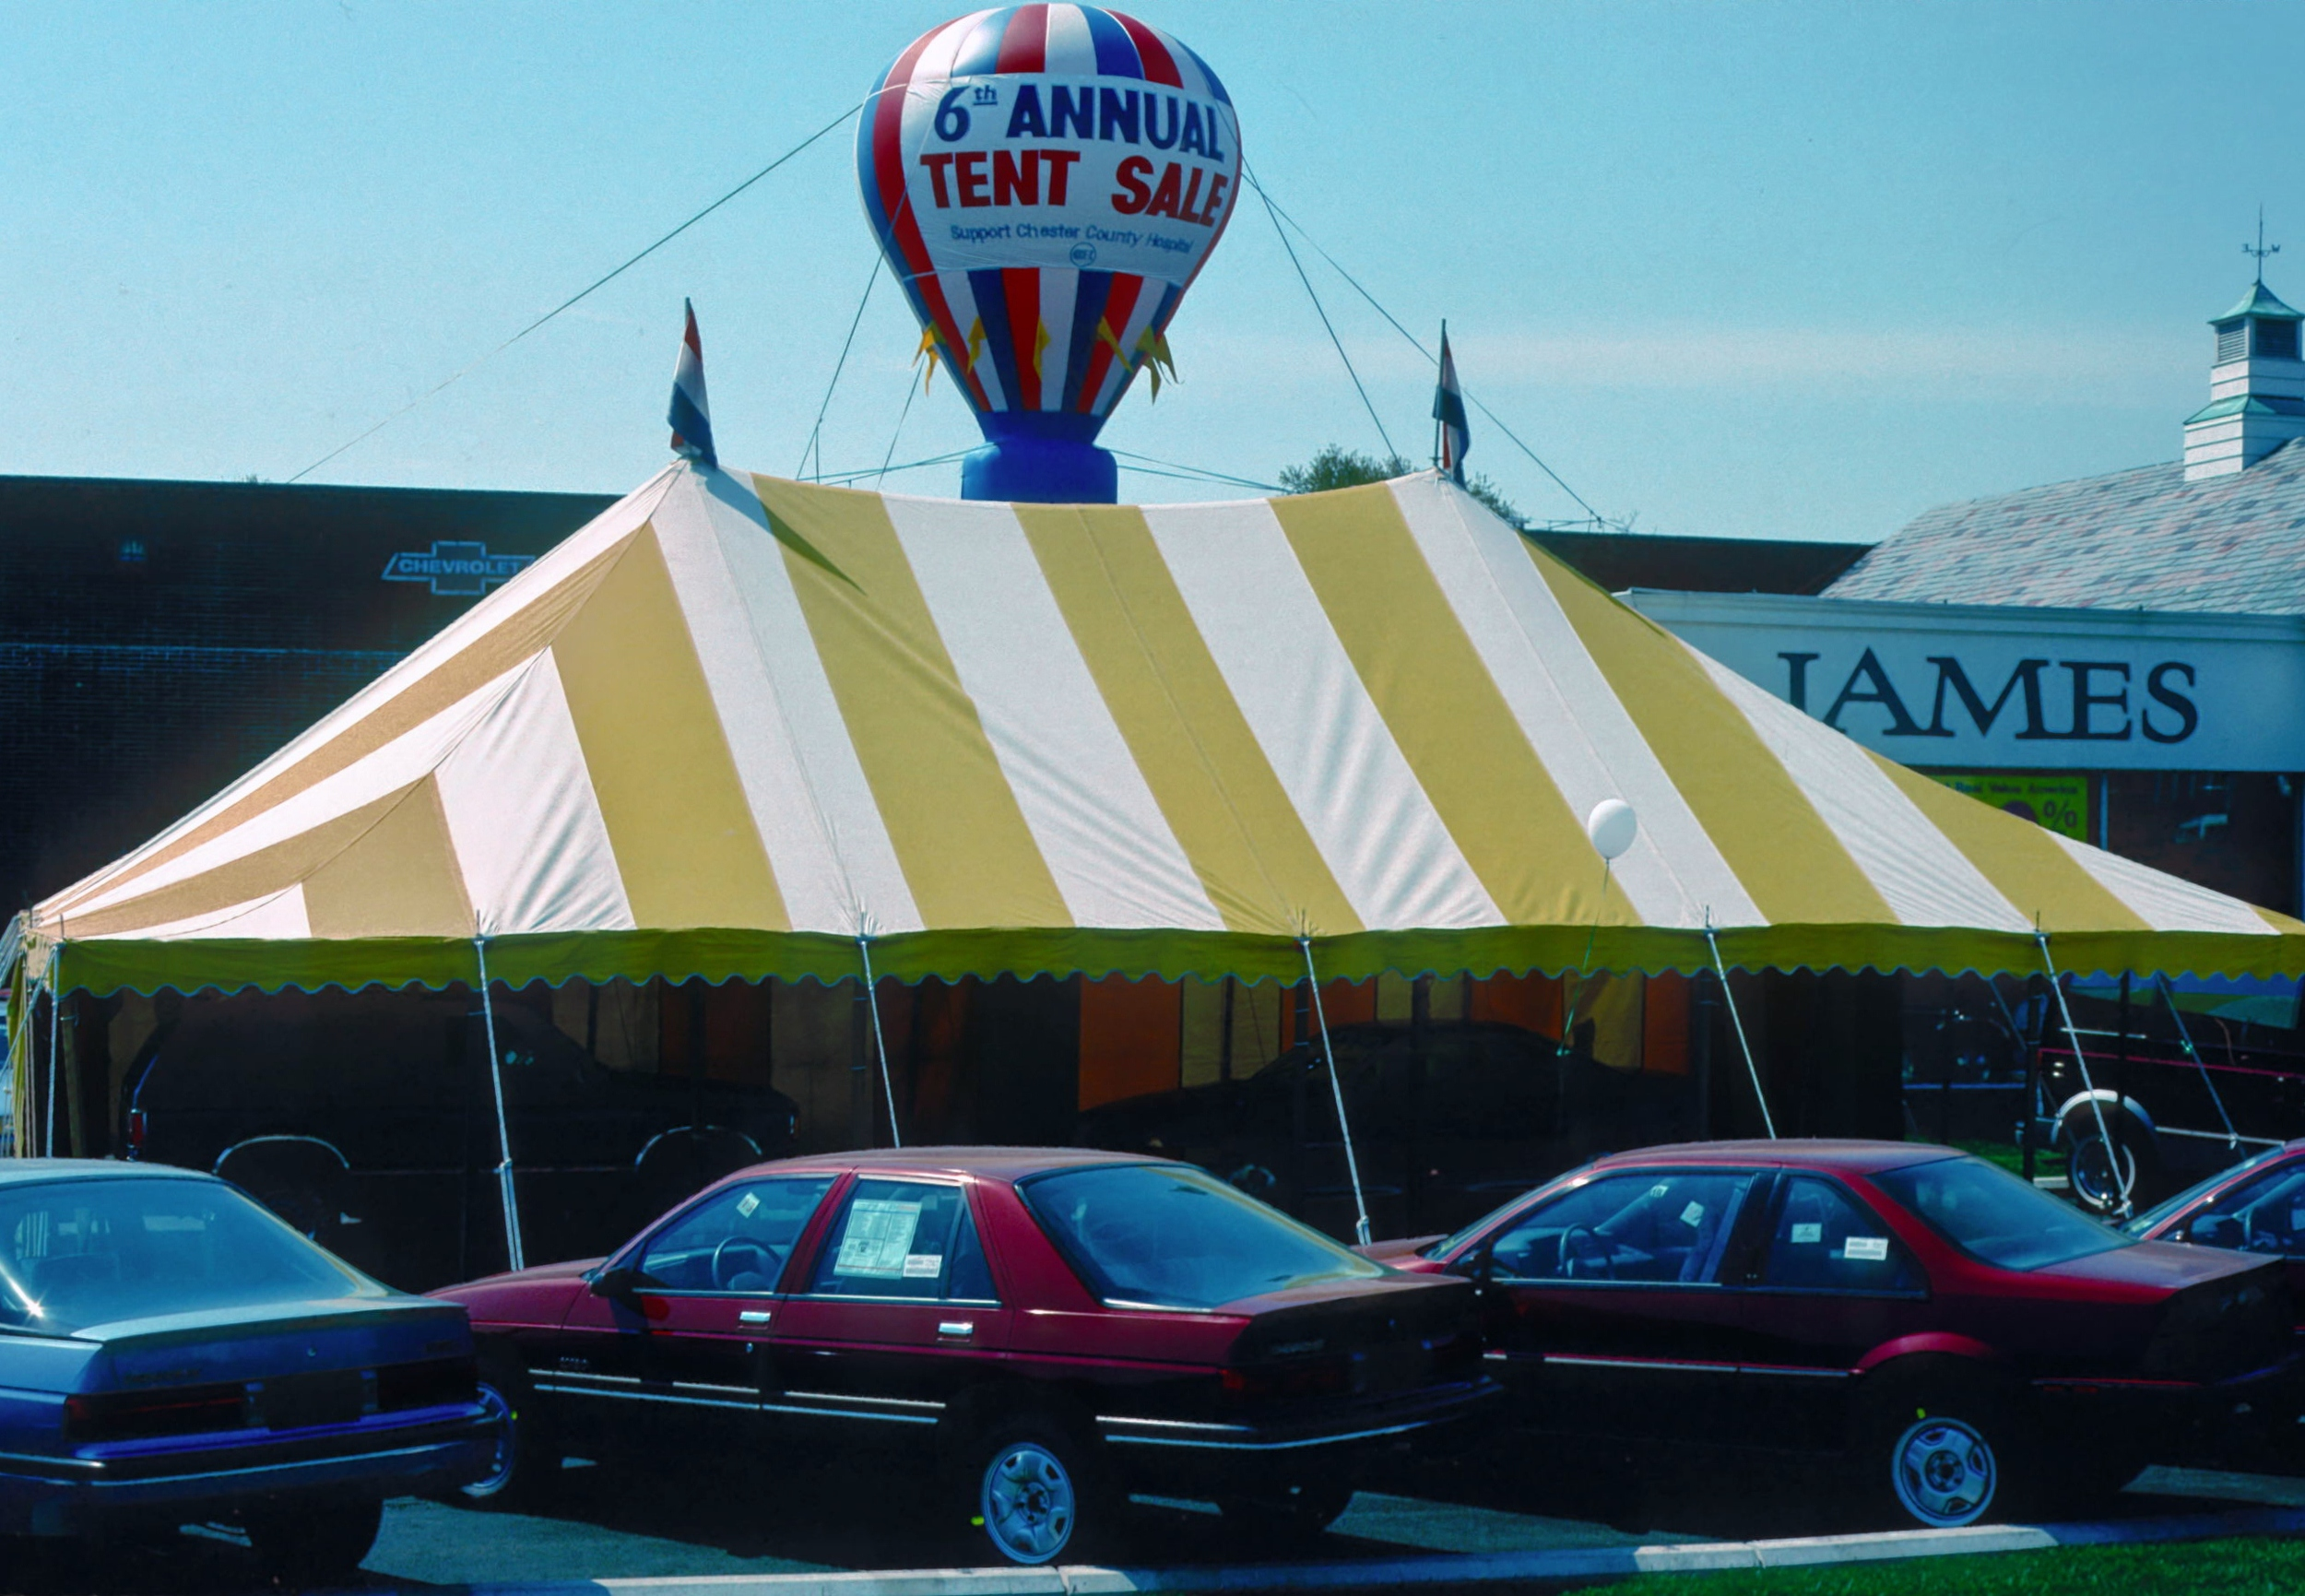 After green and yellow tents, we added yellow and white striped tents